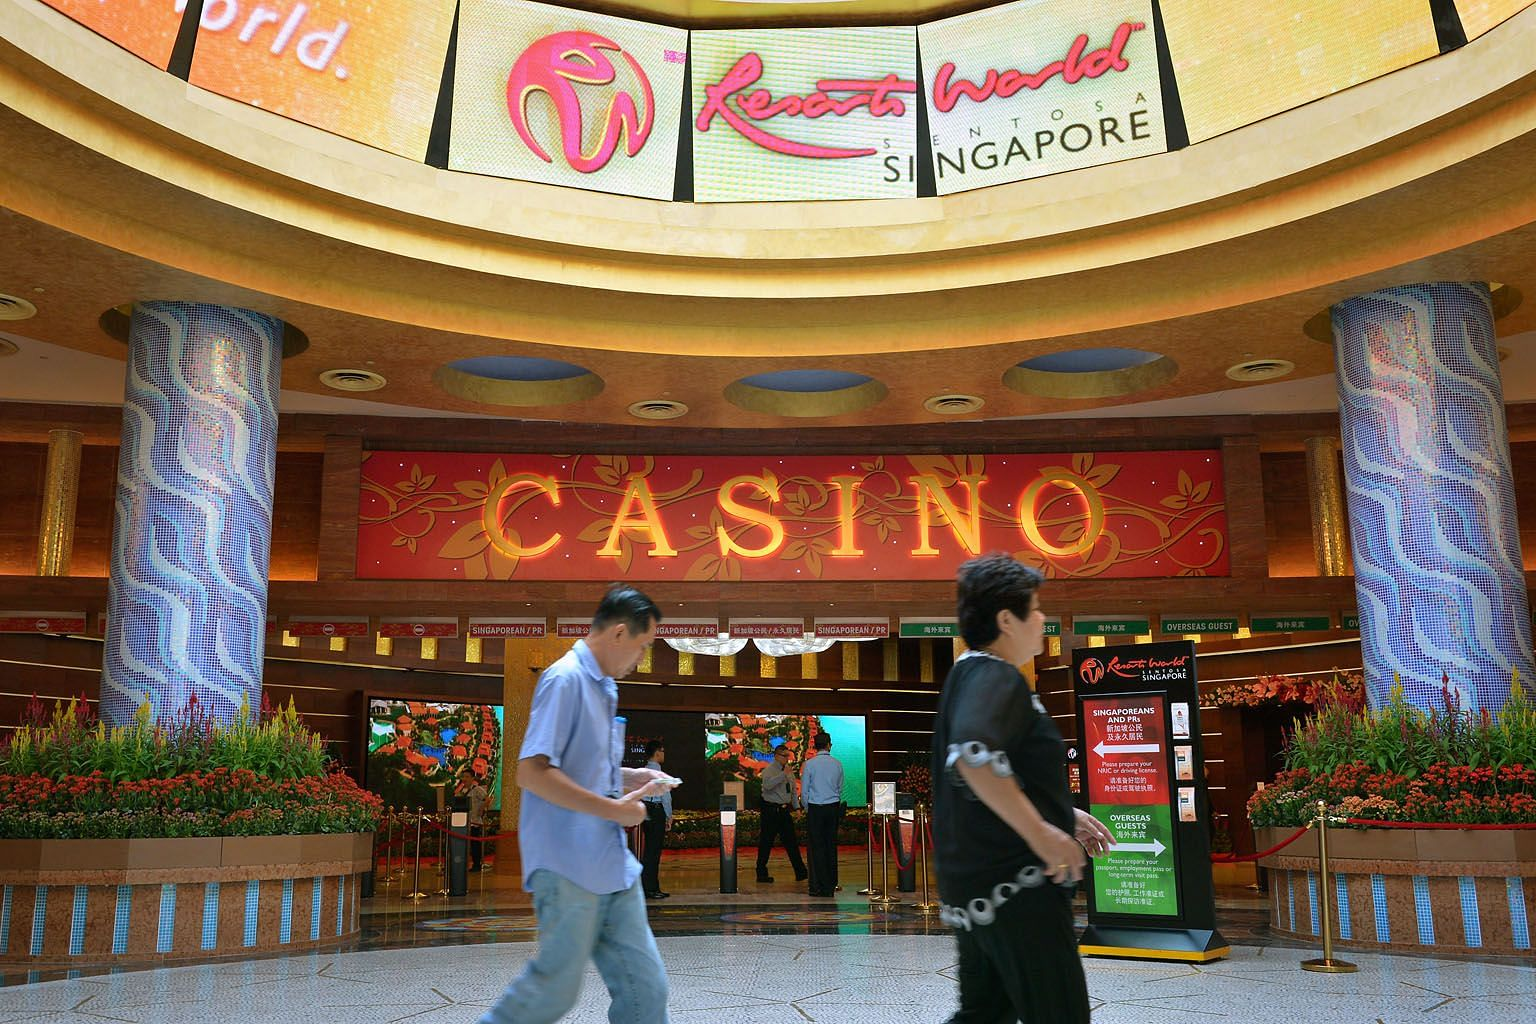 The Gambling Regulatory Authority will be reconstituted from the current Casino Regulatory Authority that regulates the casinos. The move will allow the authorities to take a more holistic approach to policies and issues.